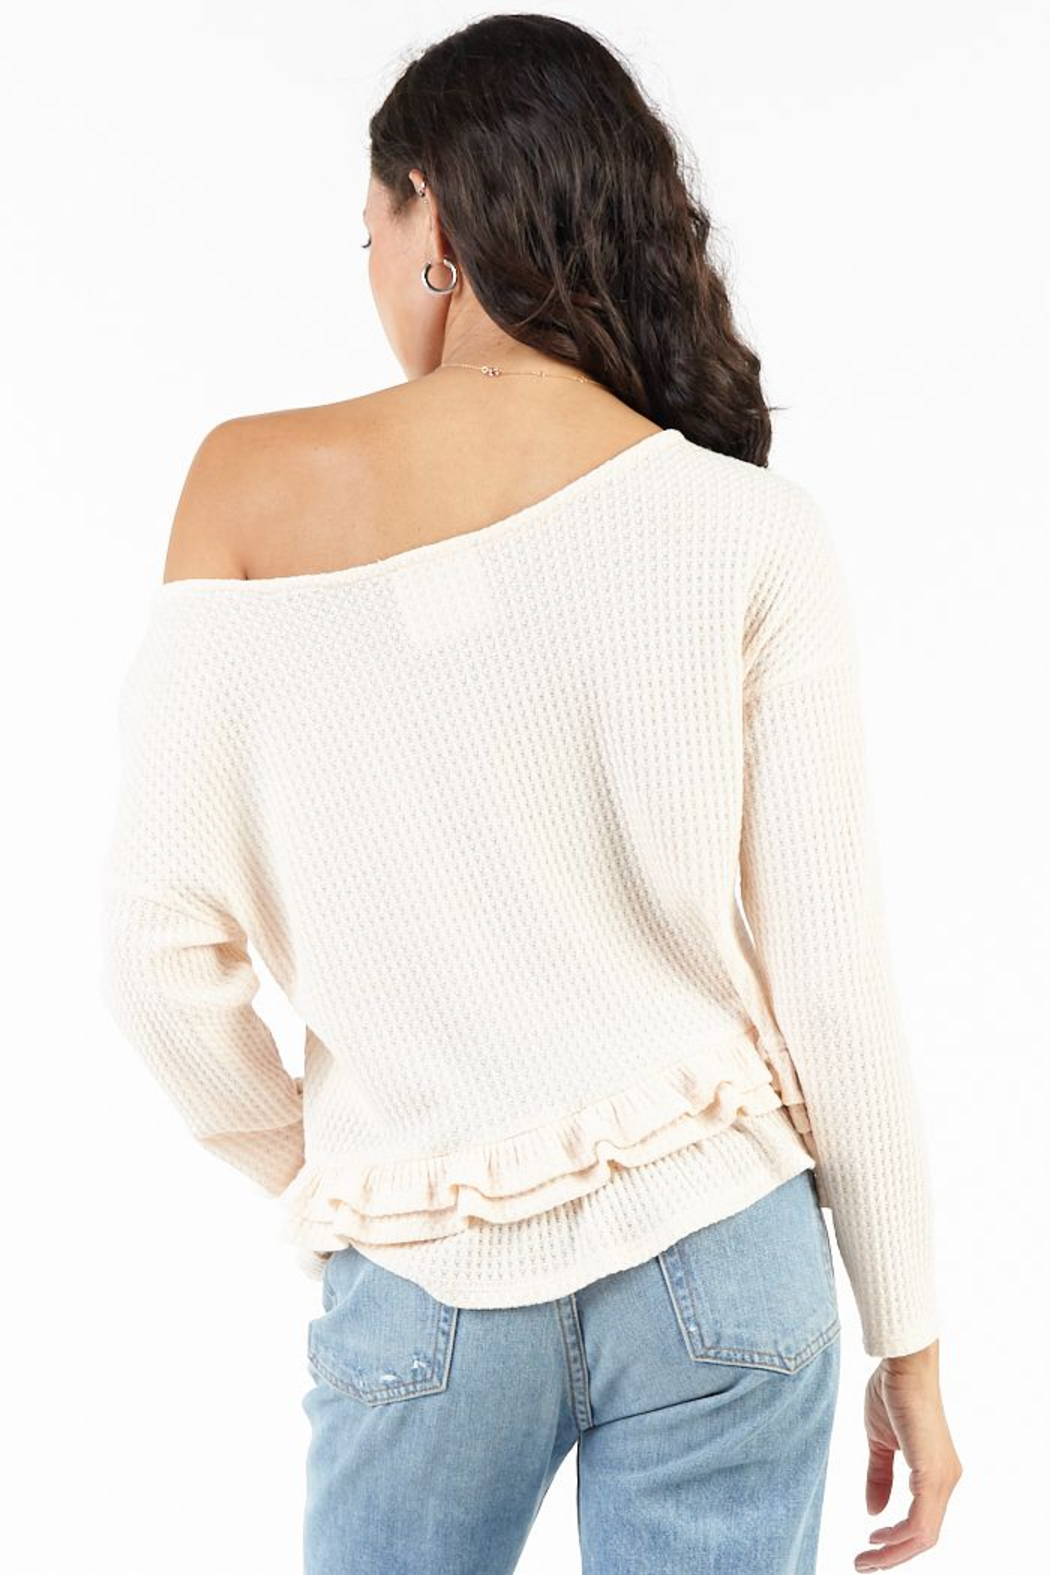 Sadie & Sage MONITE RUFFLE HEM TOP - Side Cropped Image